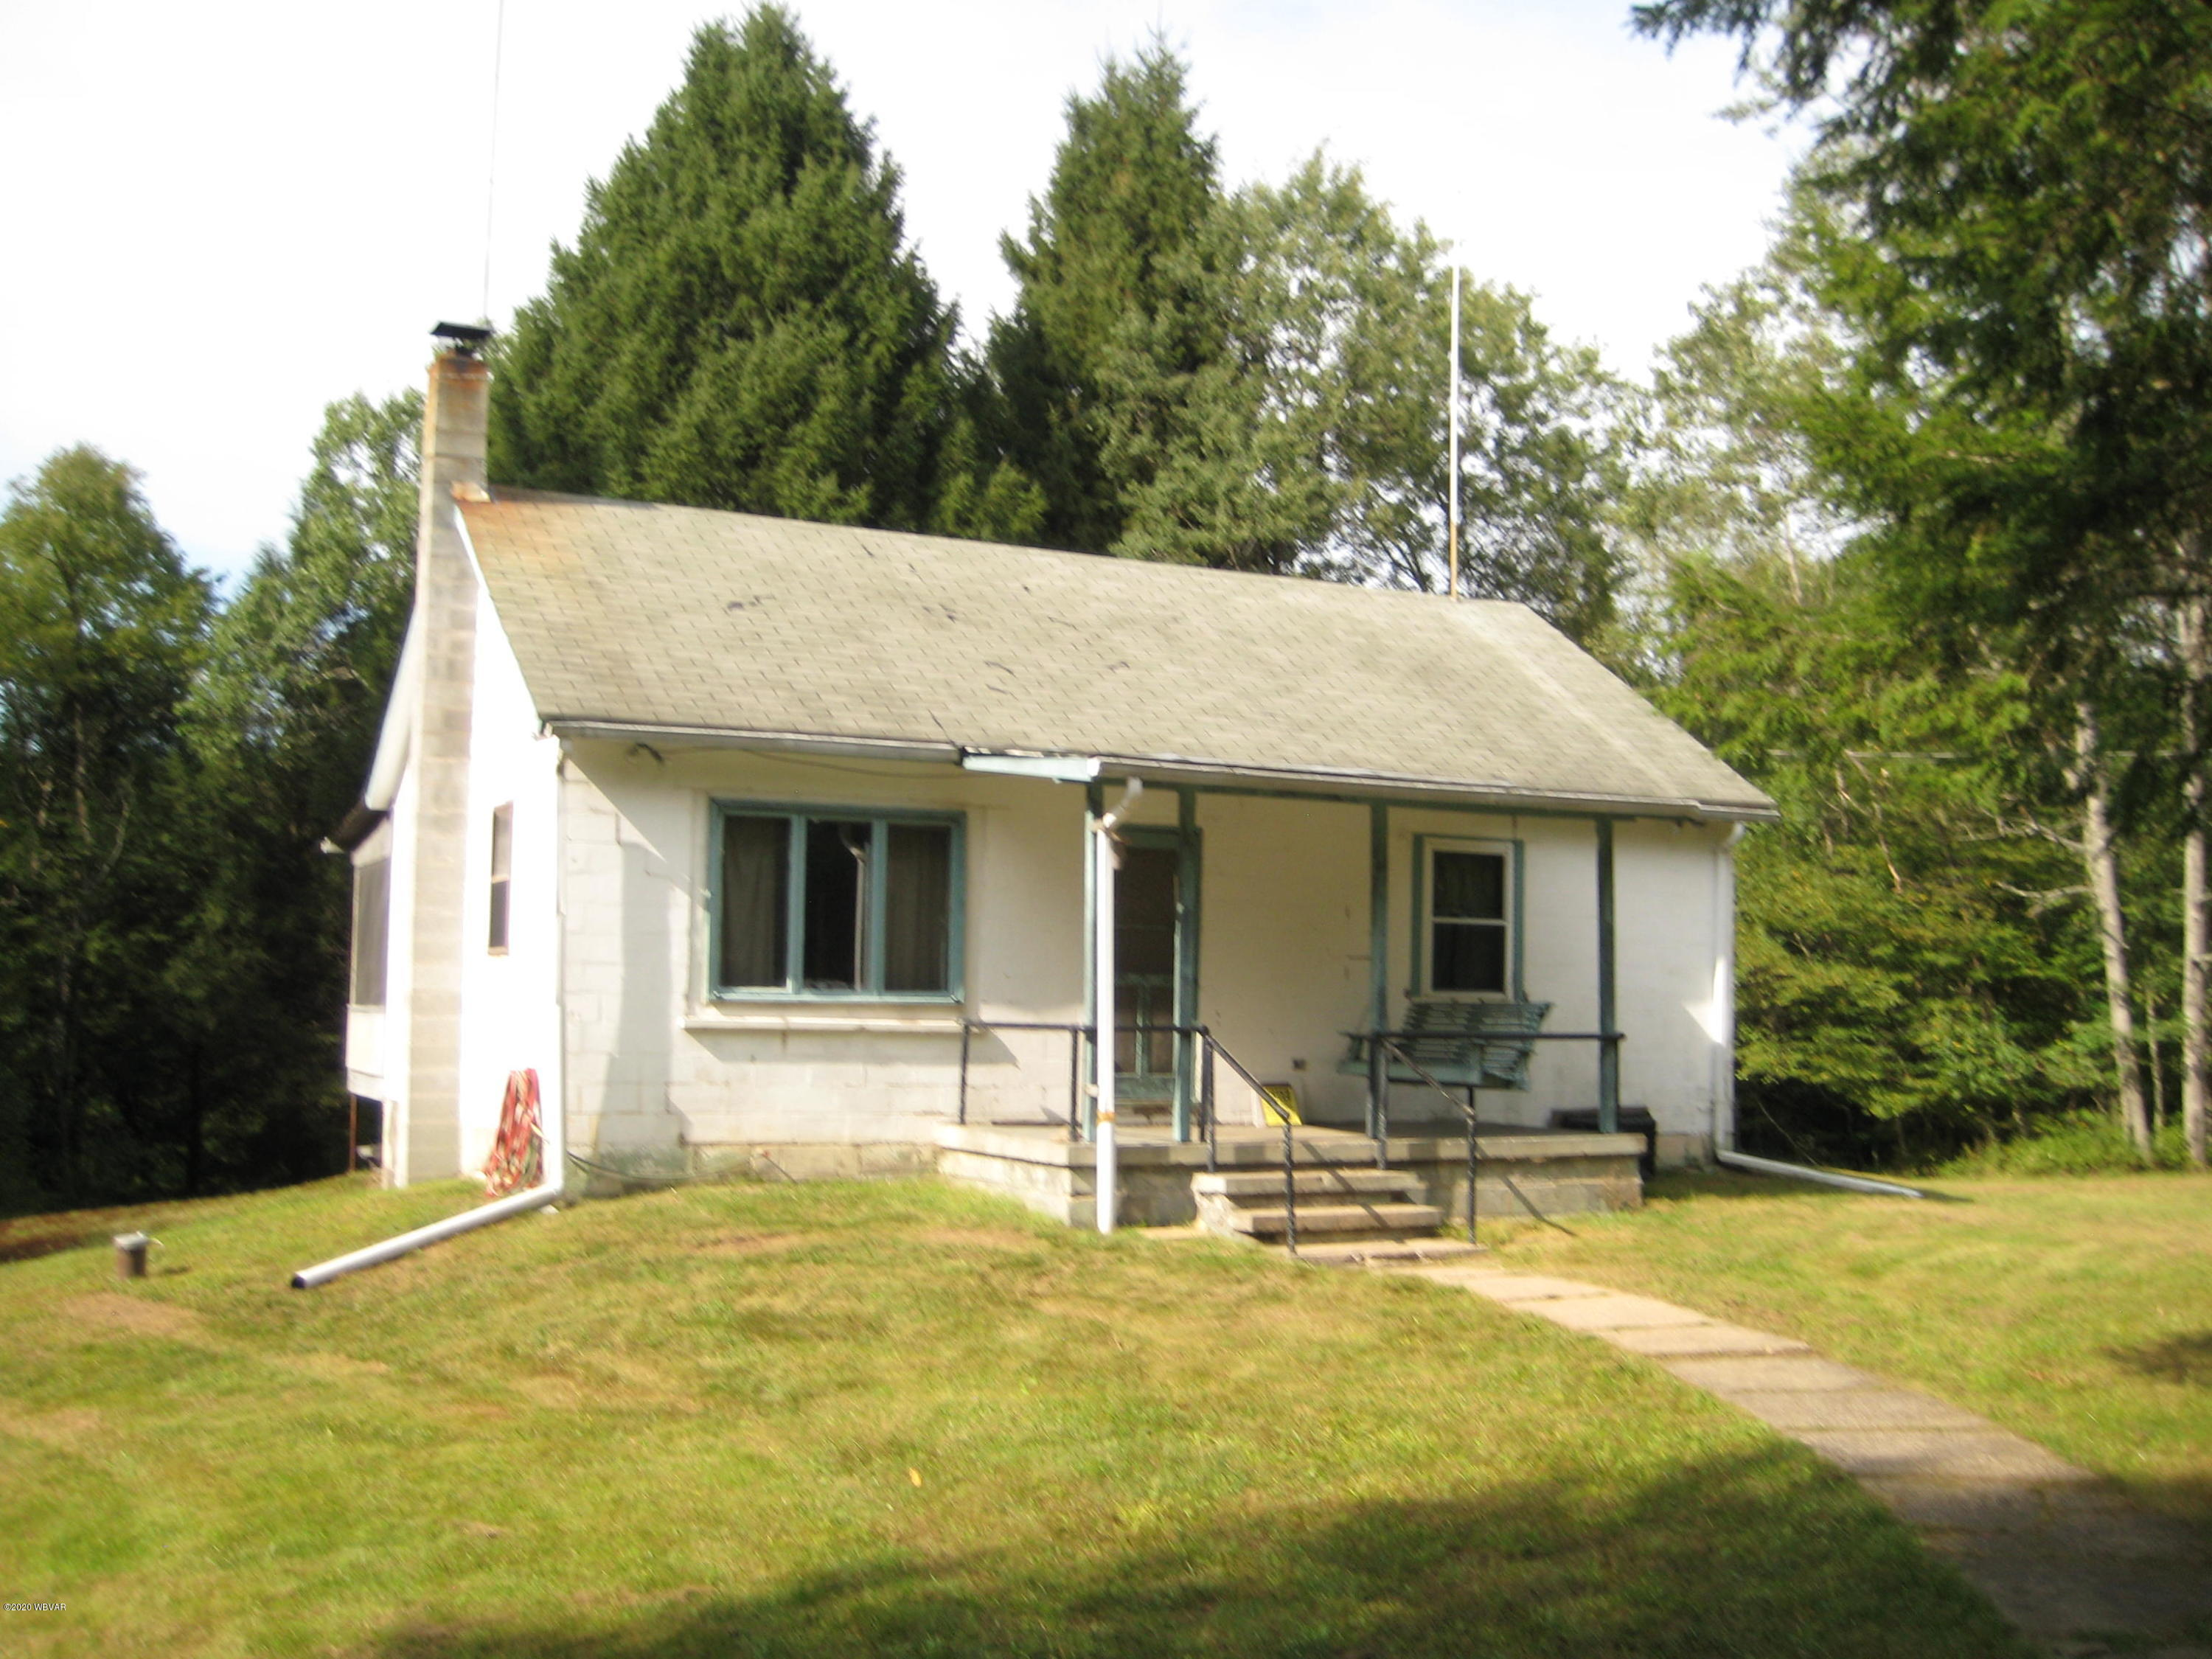 452 MAIN STREET, Lopez, PA 18628, 2 Bedrooms Bedrooms, ,Cabin/vacation home,For sale,MAIN,WB-91050